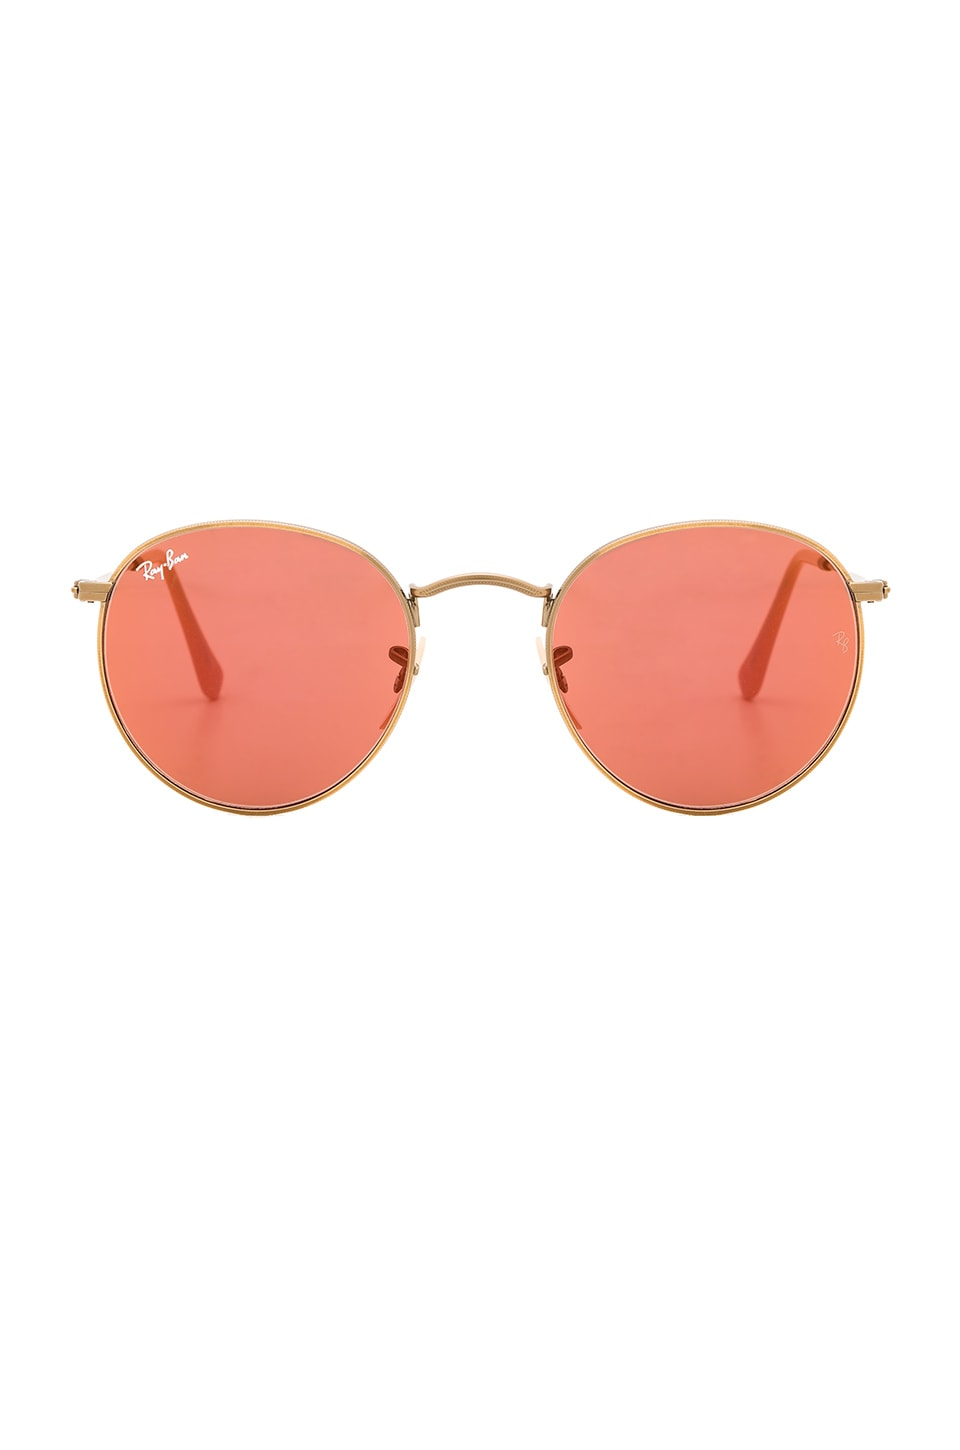 Ray-Ban Round Flash Lenses in Gold & Red Mirror